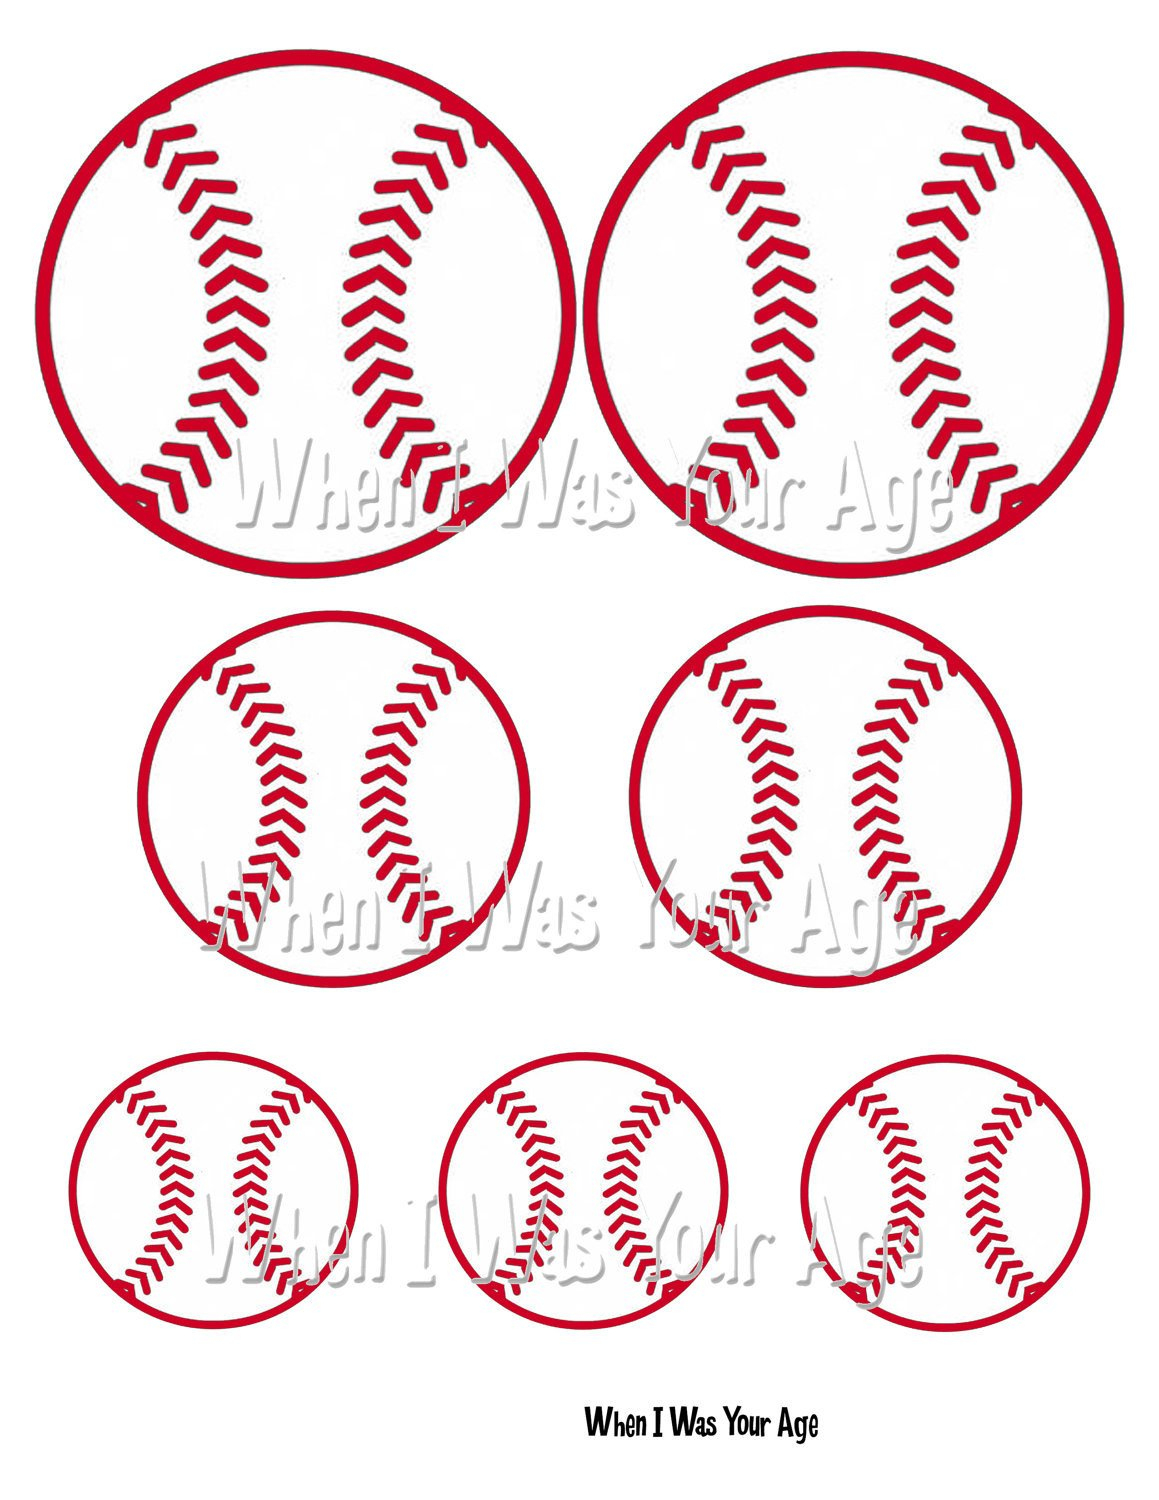 Free Printable Baseball Favor Tag - Free Printable Baseball Favor Tags